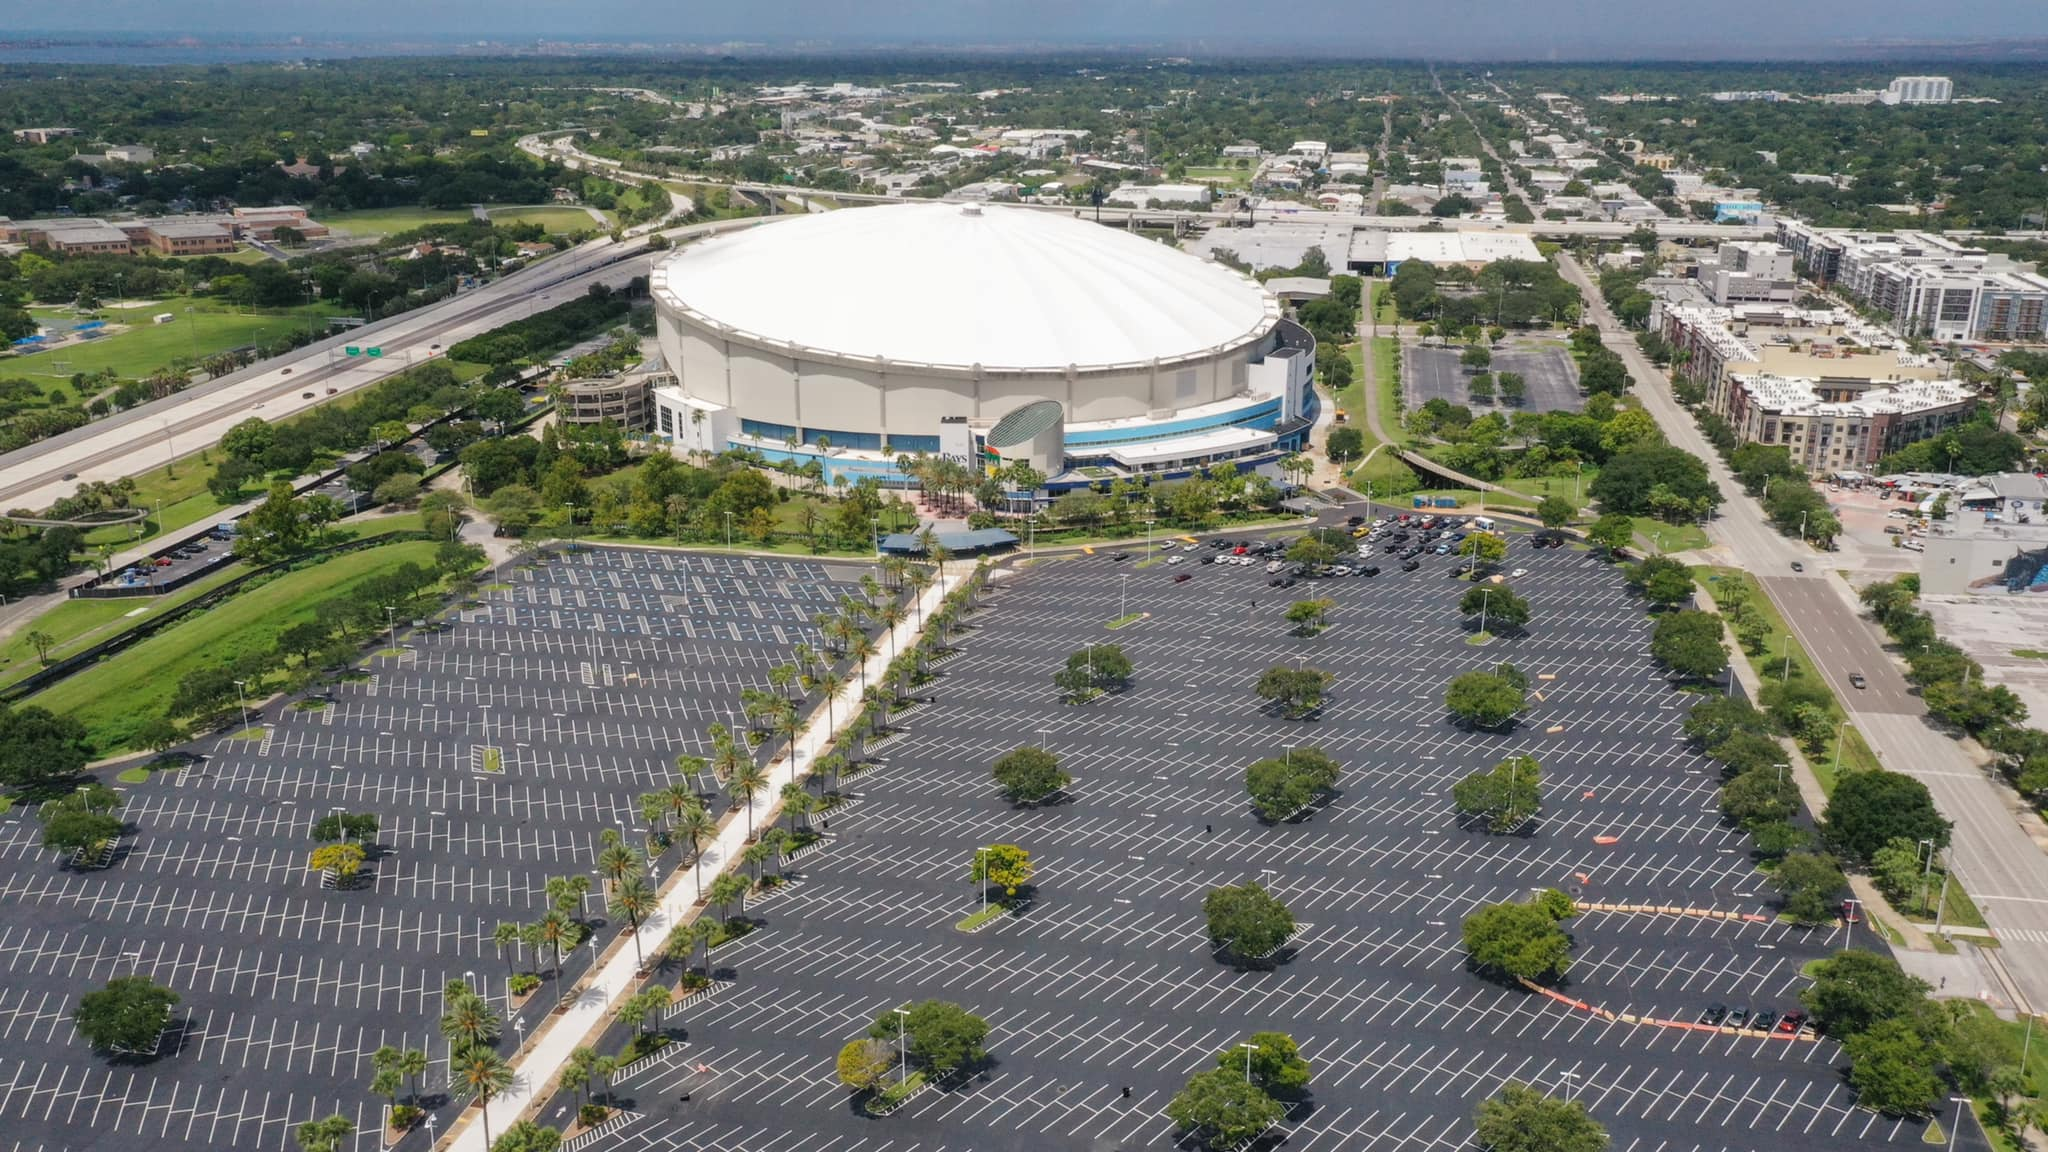 An aerial photo of Tropicana Field in St. Petersburg Florida with a view of the parking lot and dome.